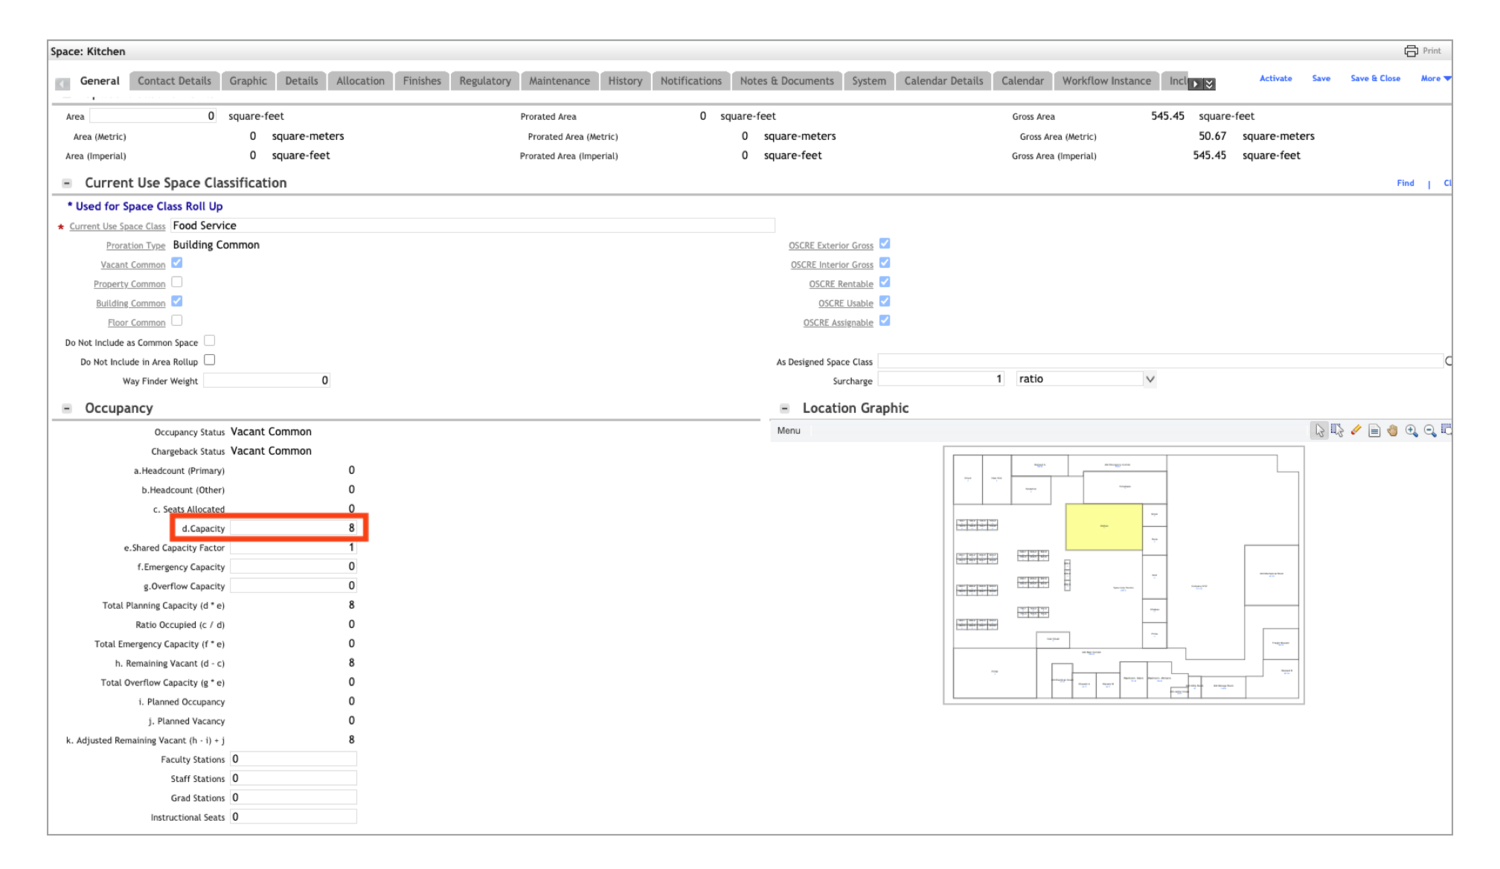 """IBM Tririga space module, managing spaces by adjusting capacity levels of the Kitchen under the """"Occupancy"""" section, with a location graphic of where the kitchen is located on the floor plan."""